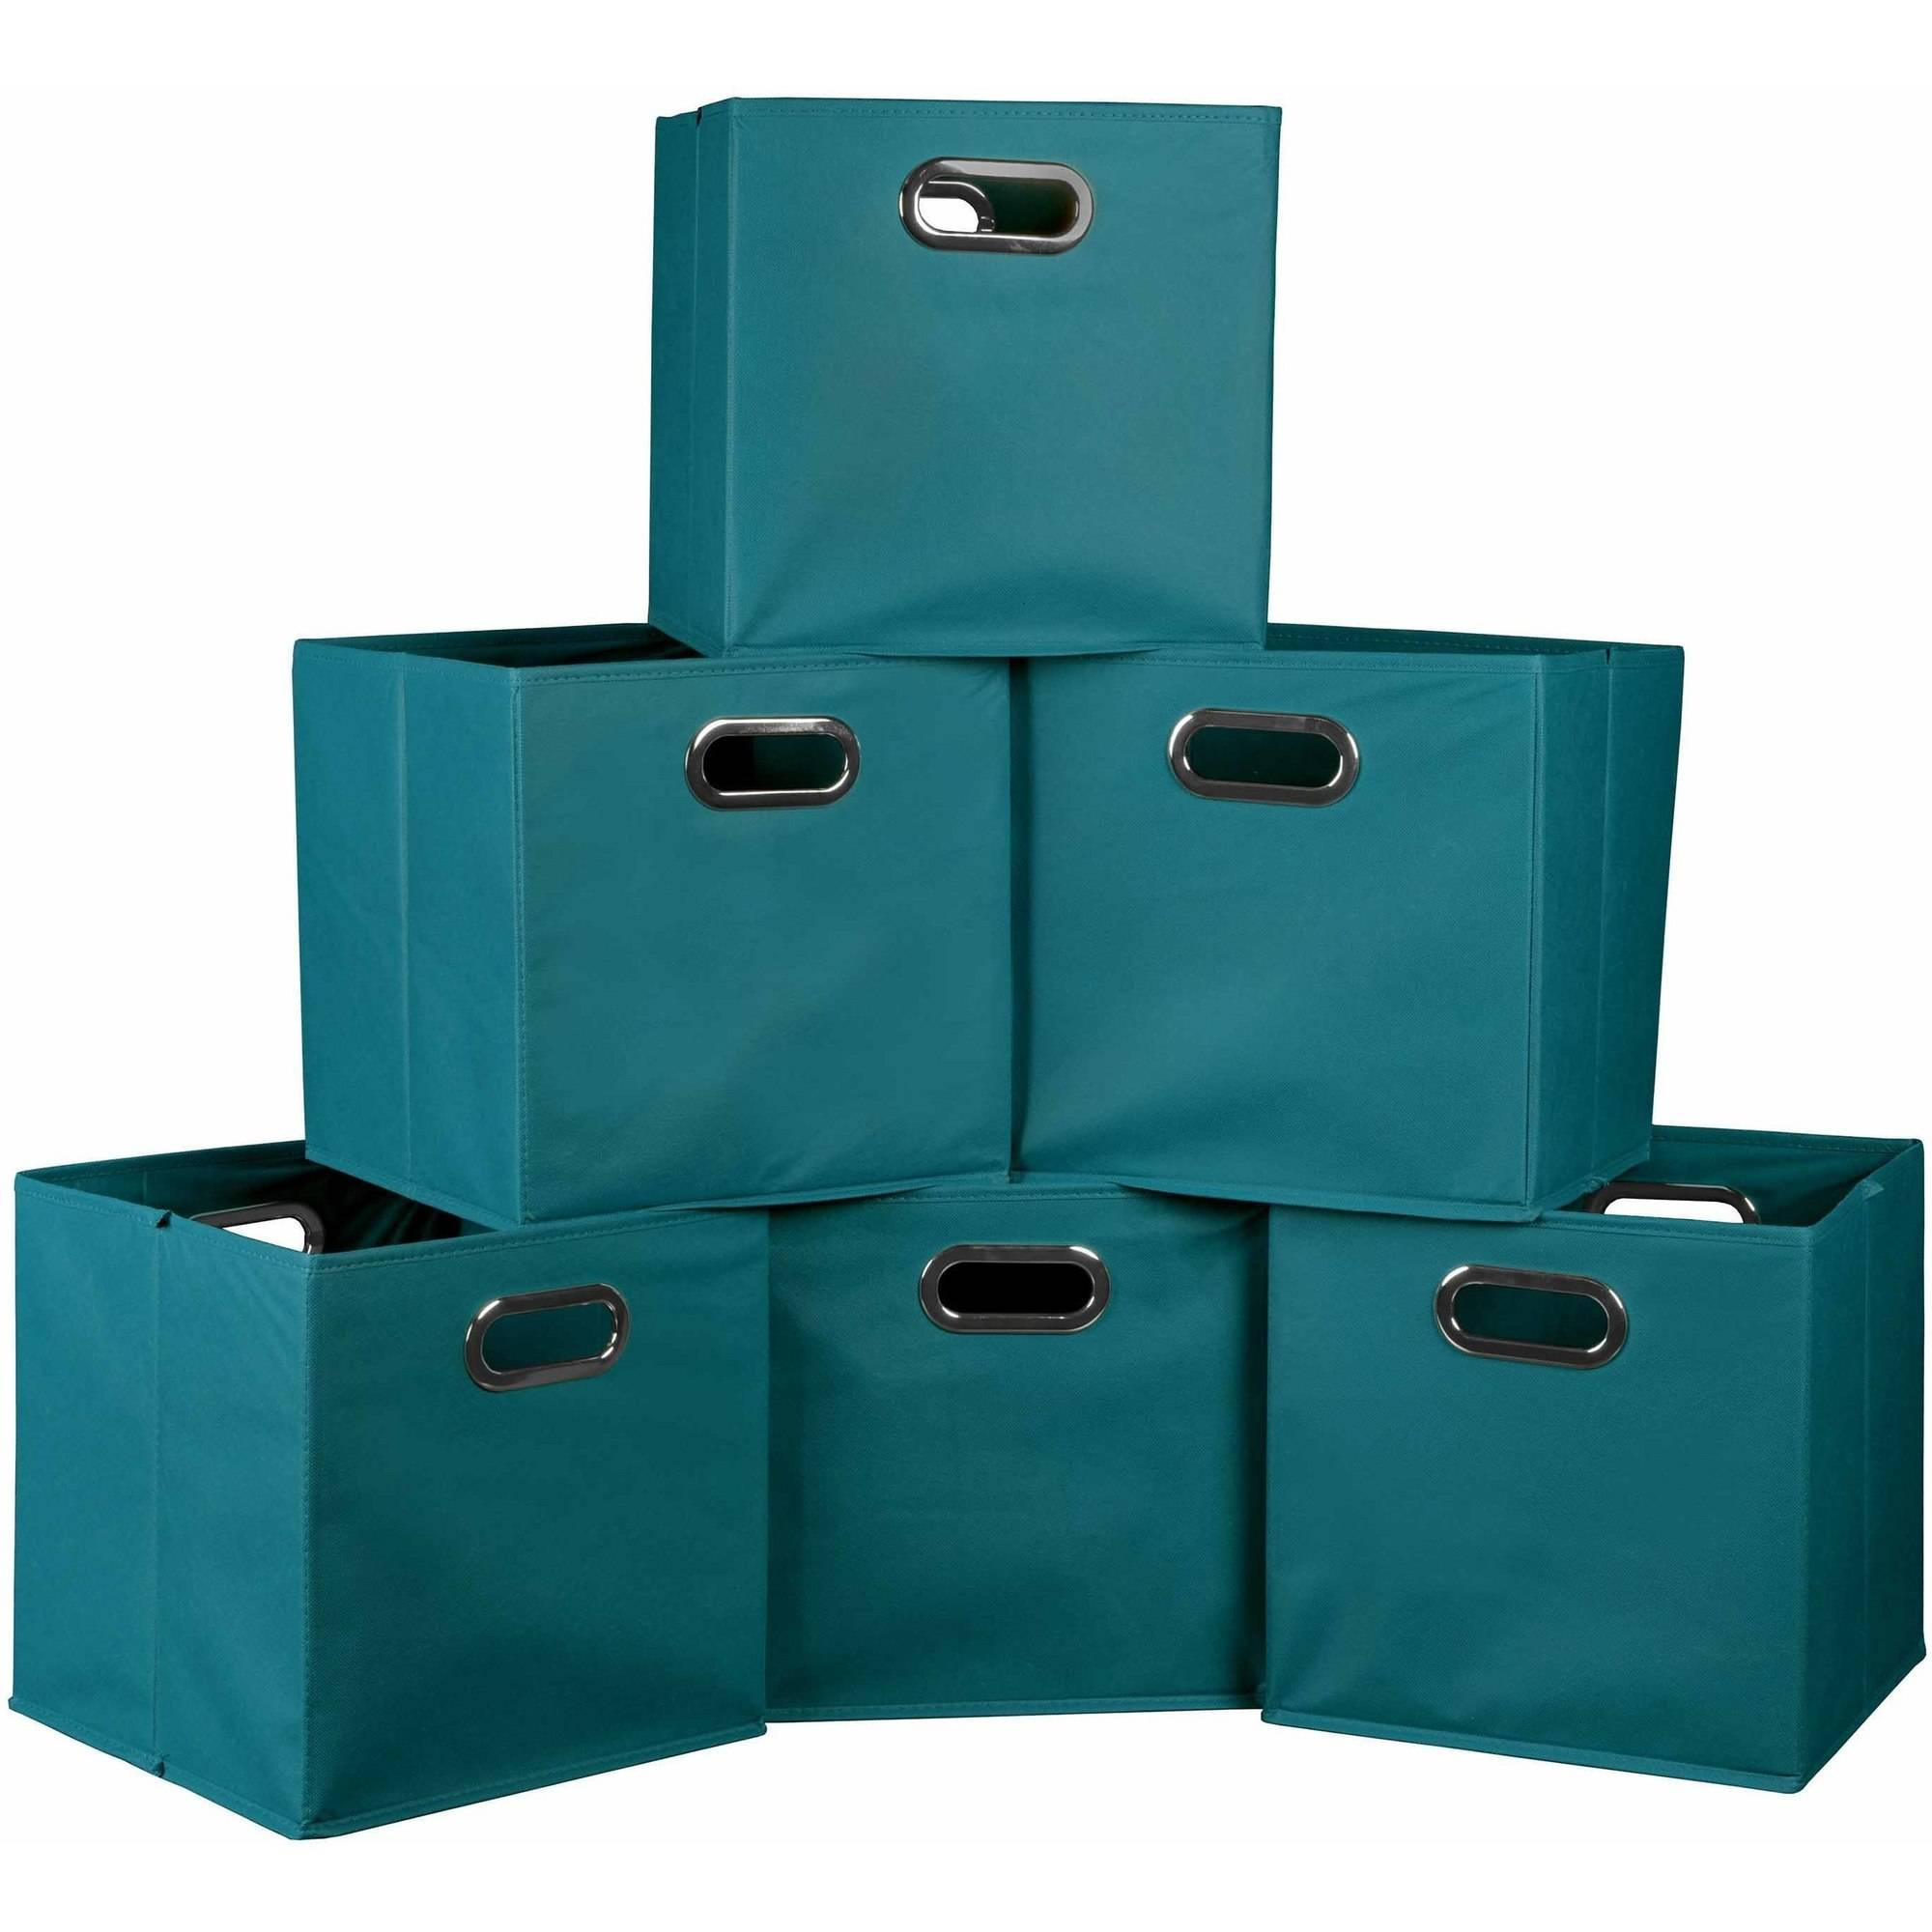 Niche Cubo Foldable Fabric Storage Bins, Set Of 6, Multiple Colors